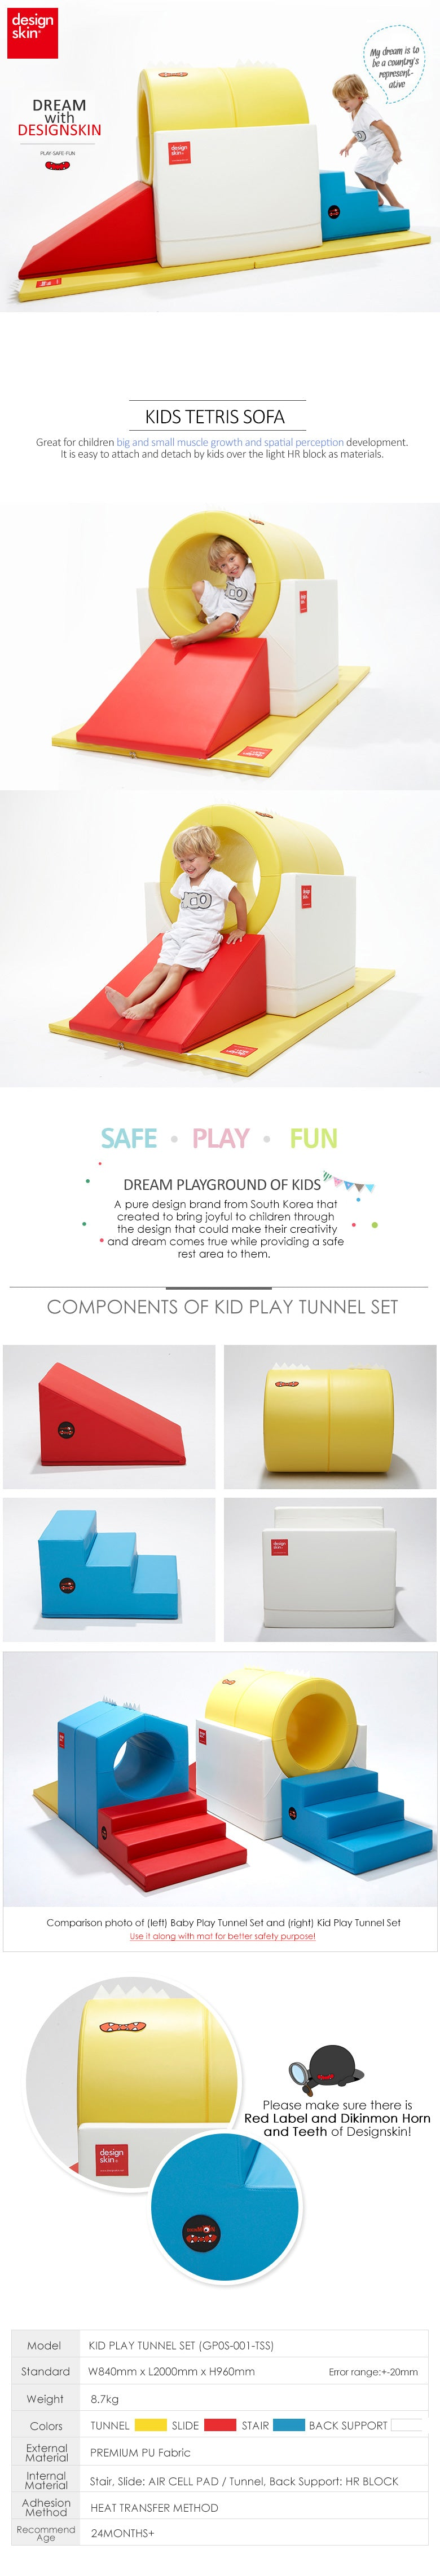 kid play tunnel set desginskin